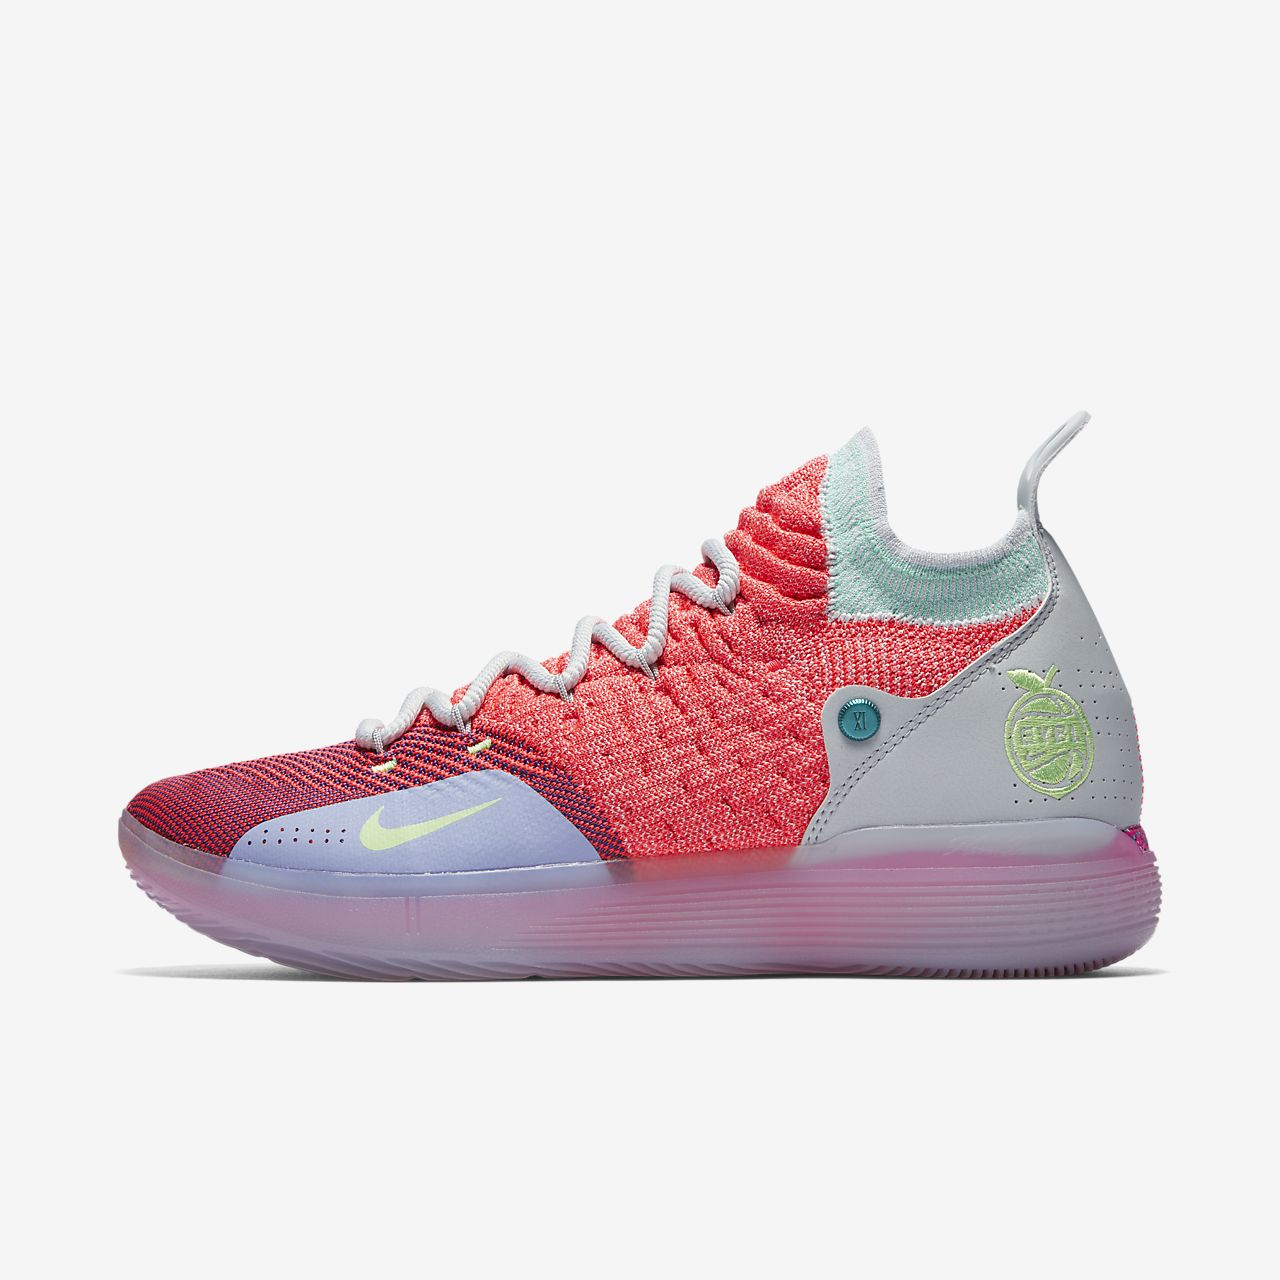 official photos da8cc eea12 nike kd 11 hot punch pure platinum twilight pulse lime blast ao2604 600